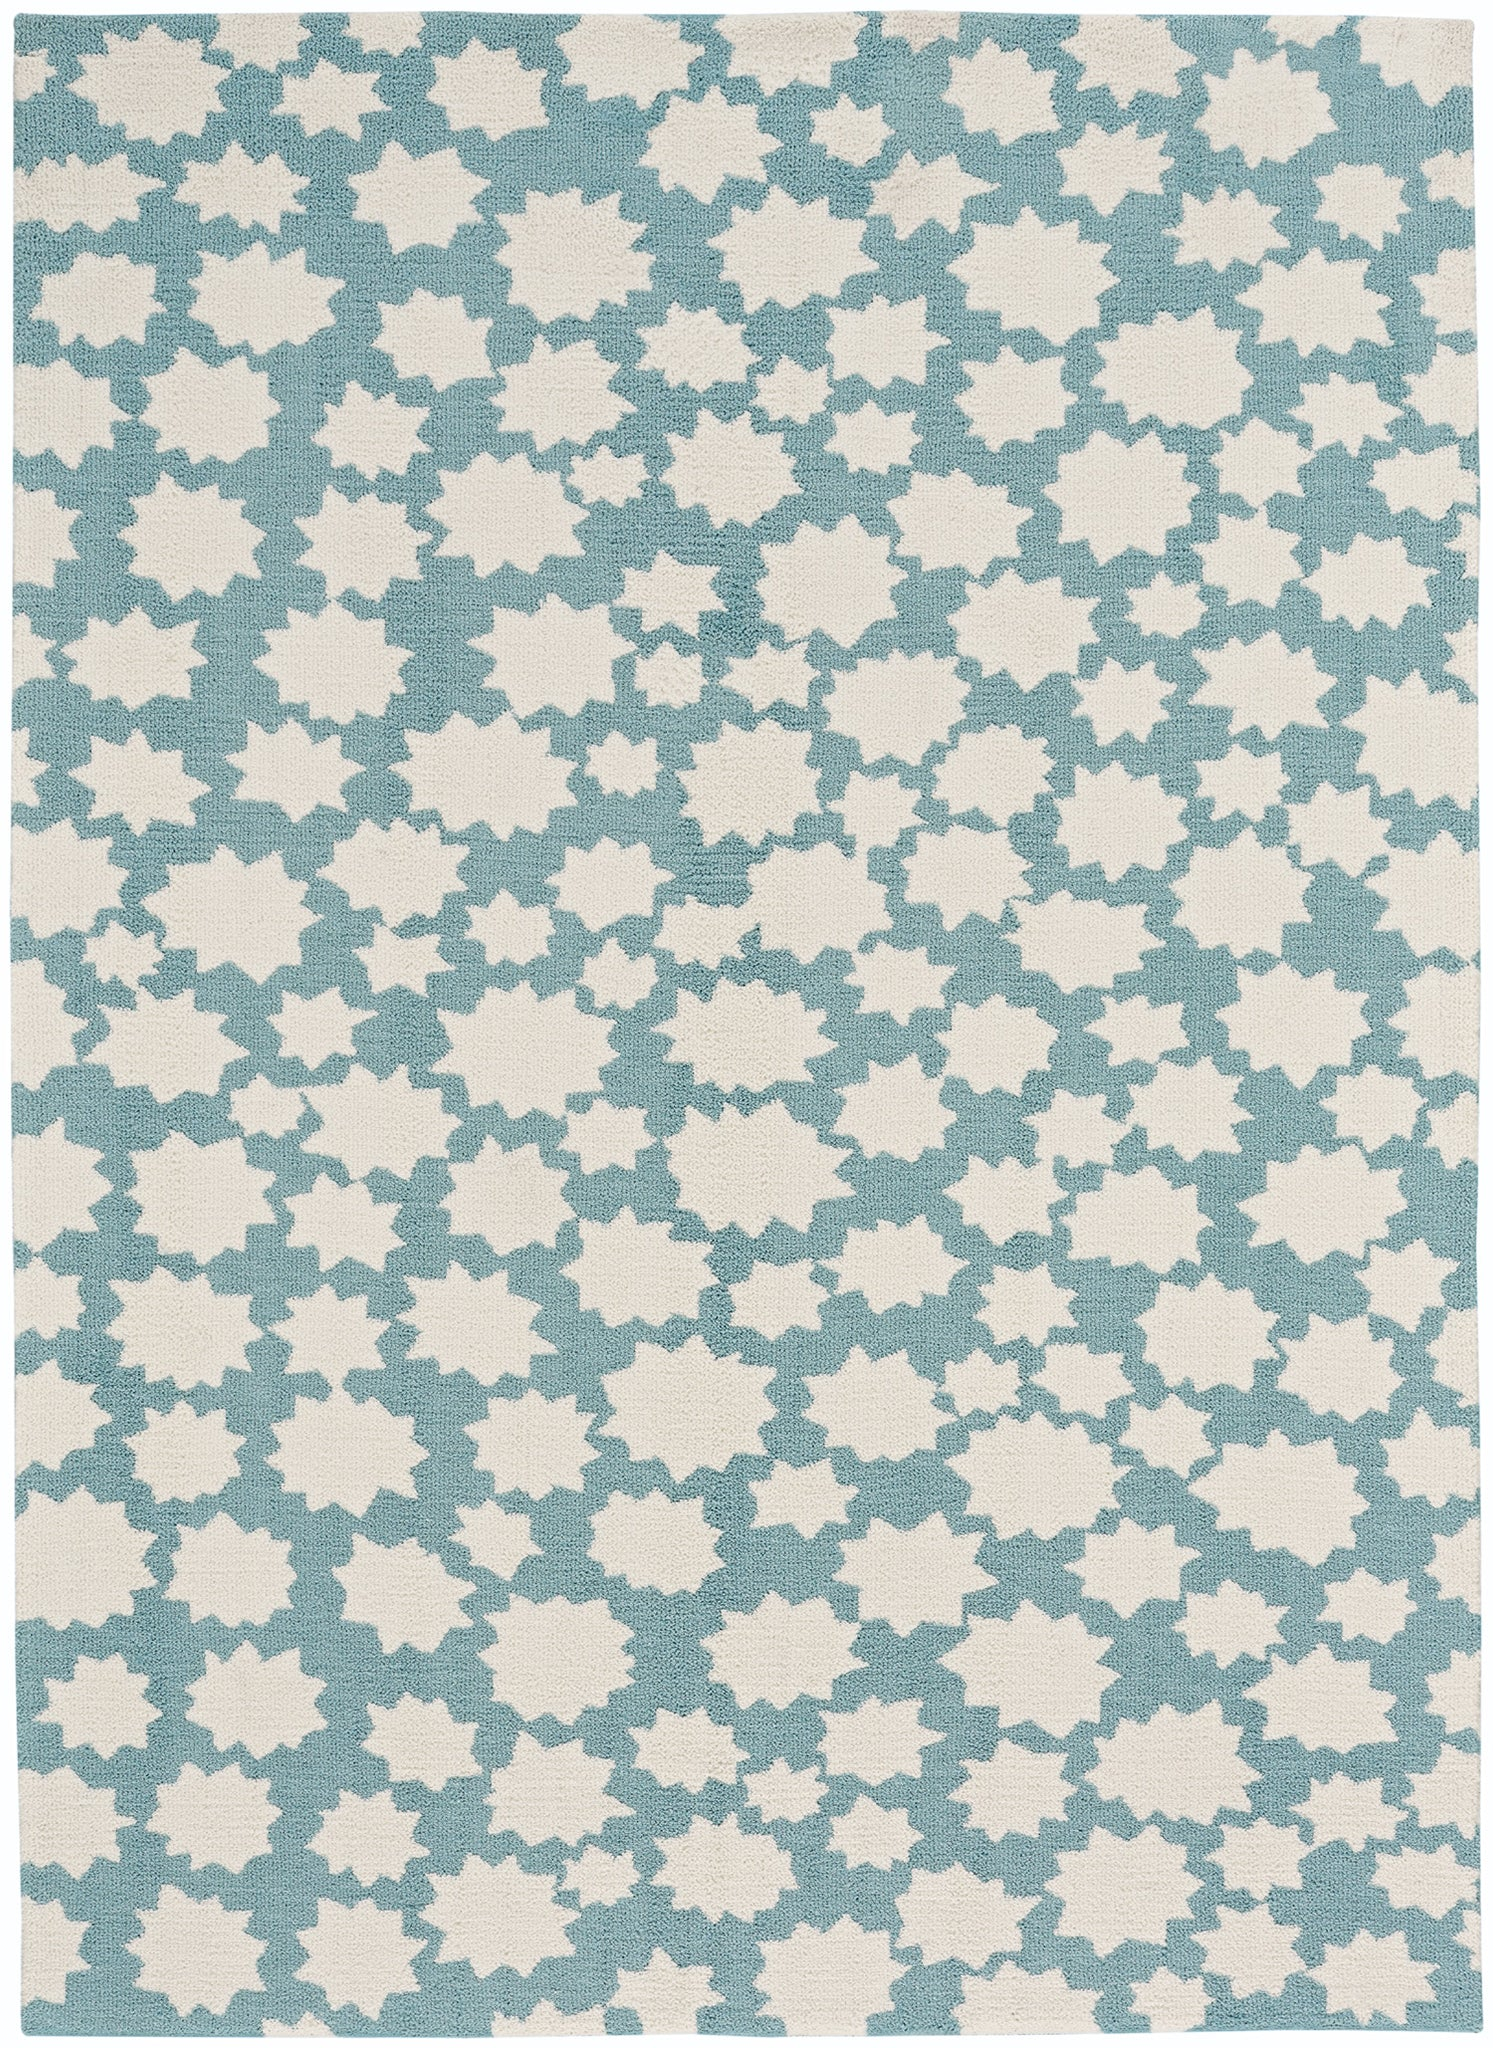 Capel Sky Heavenly 6301 Blue Seas 405 Area Rug by Hable Construction main image